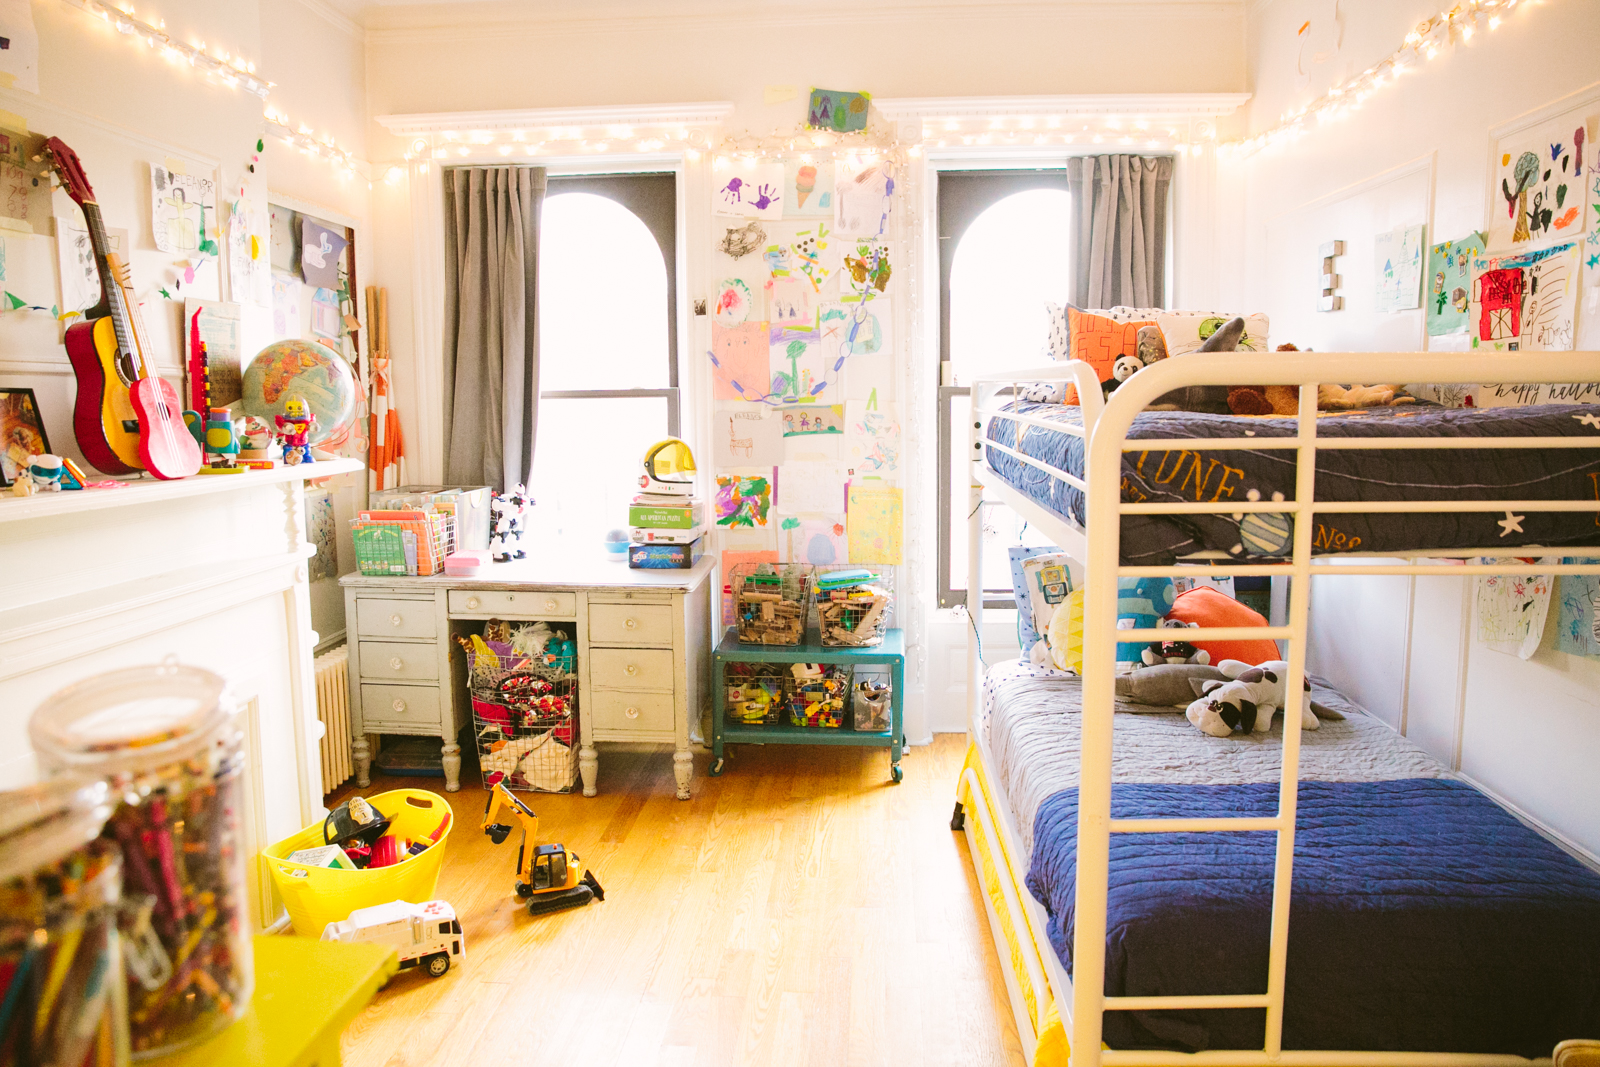 Small Space Living<br> : small space living: tips for kids bedroom! - Love TazaLove Taza